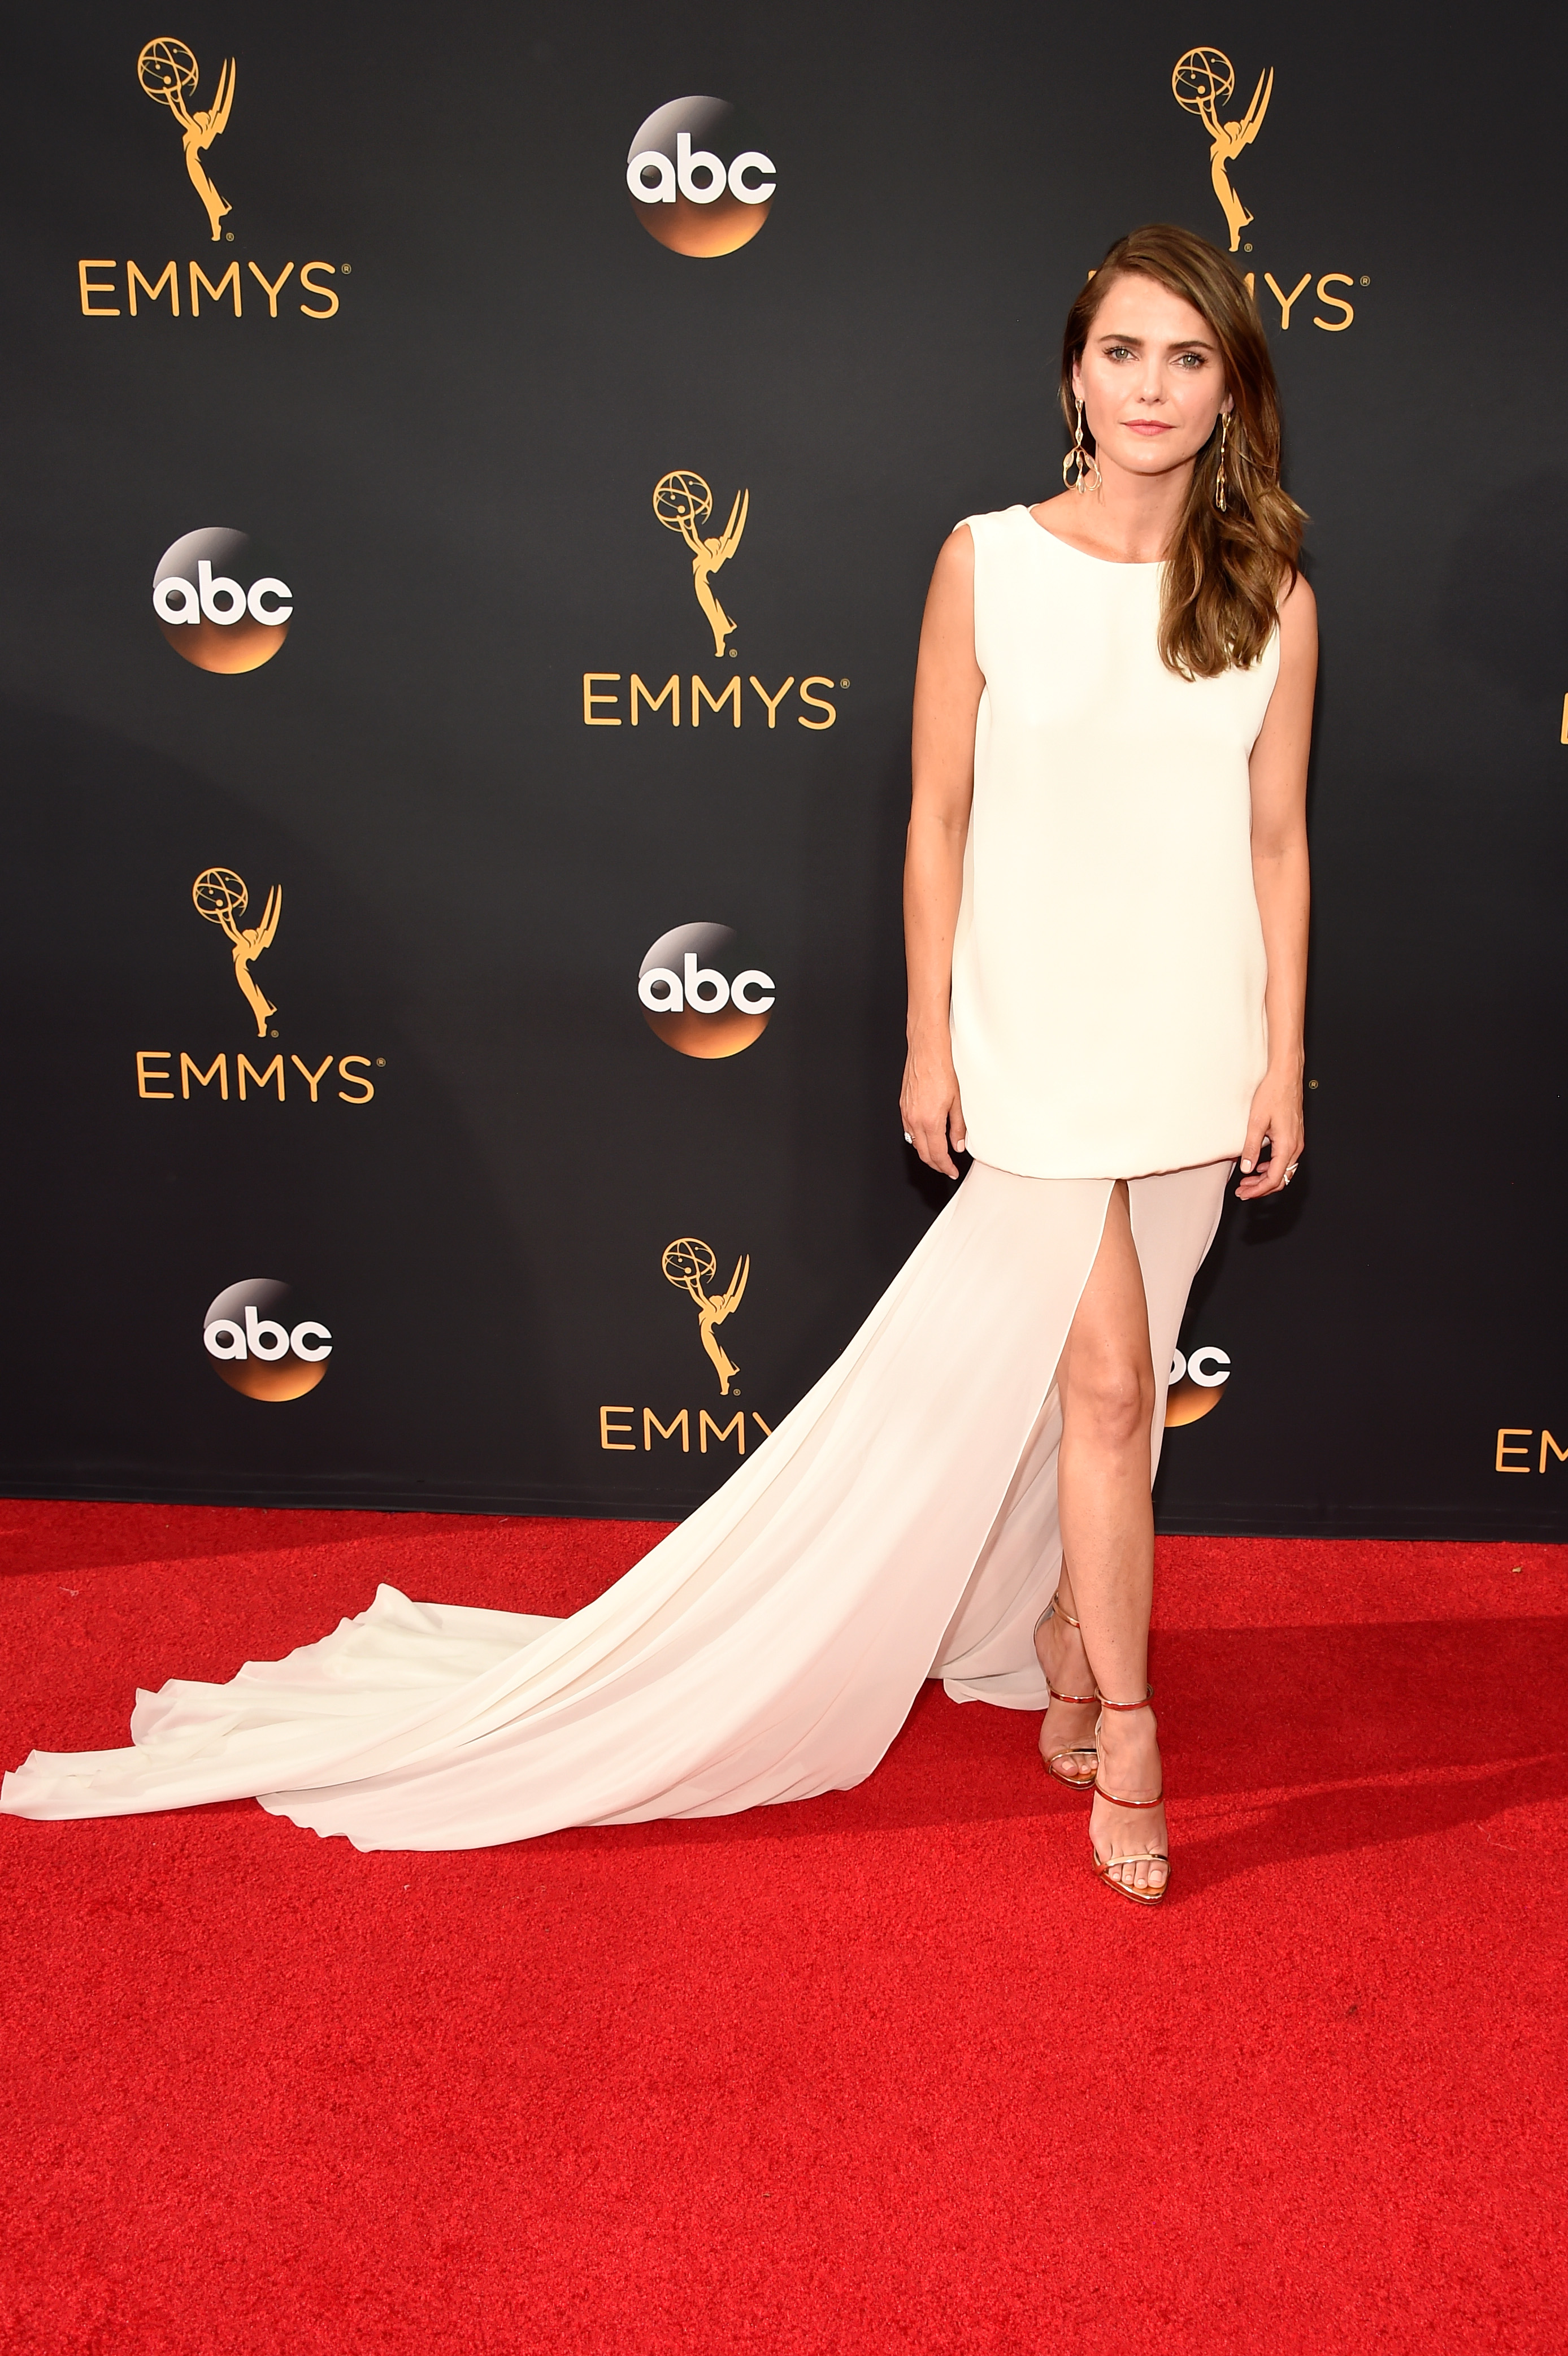 Kerri Russell arrives at the 68th Annual Primetime Emmy Awards at Microsoft Theater on Sept. 18, 2016 in Los Angeles.